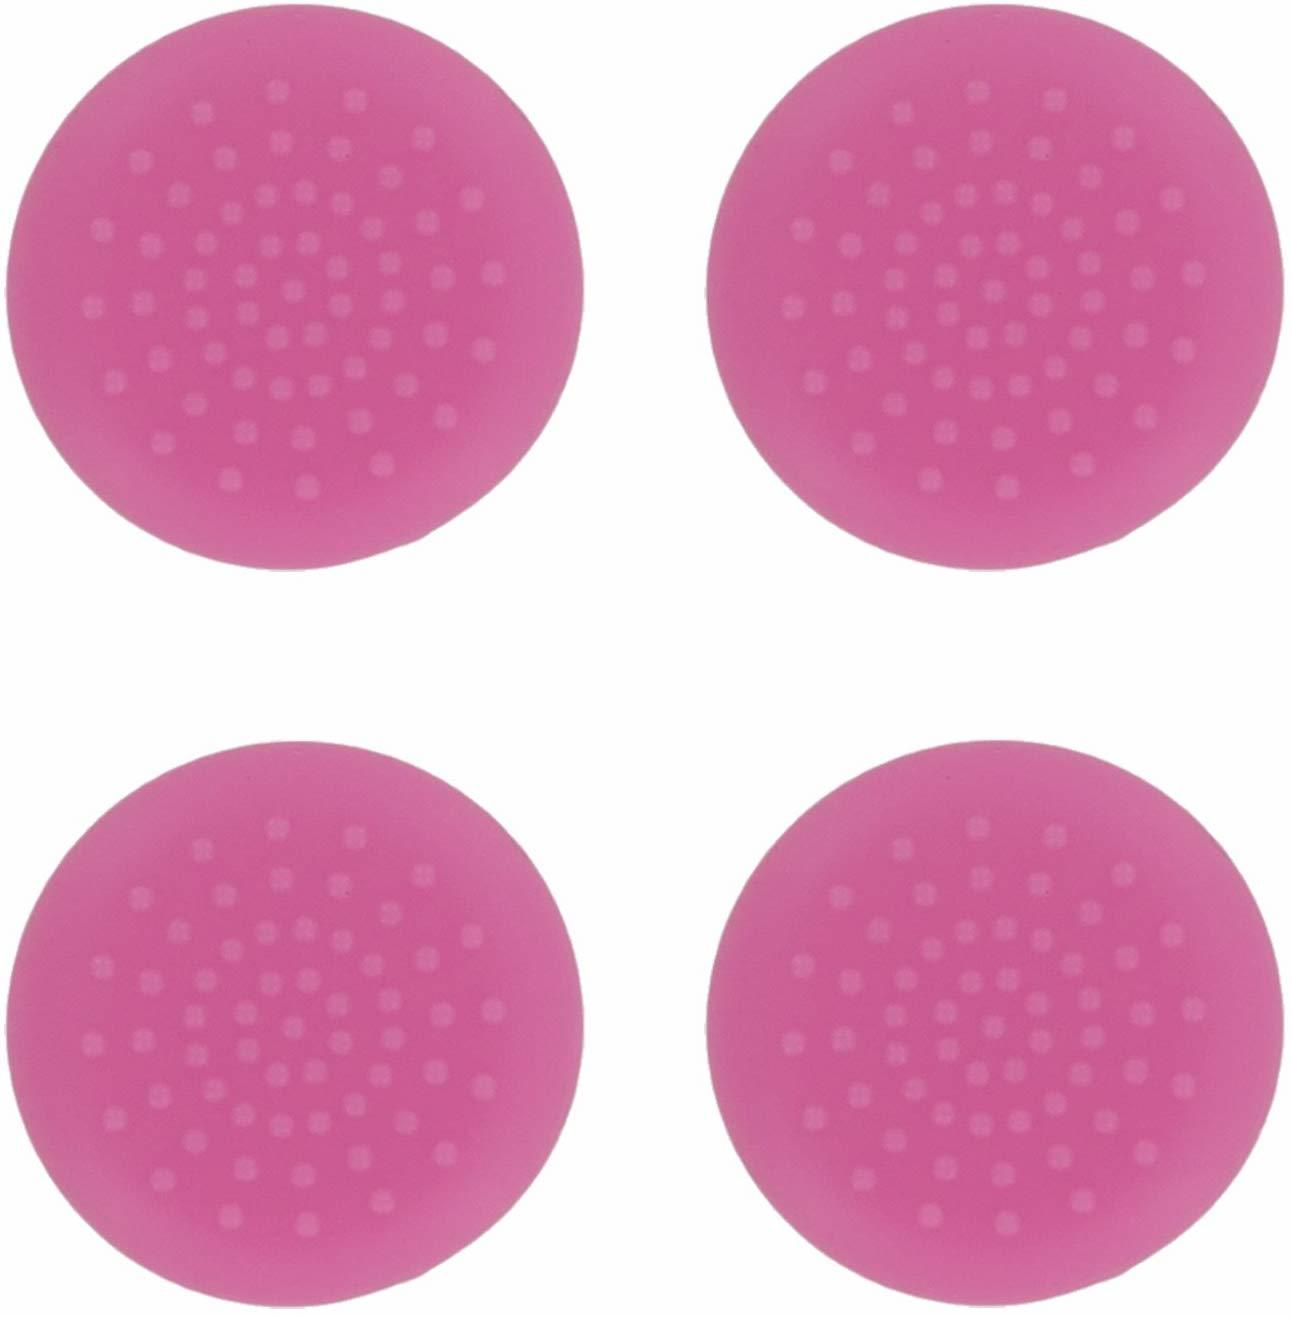 PS4 TPU Thumb Grips - Pink - PS4